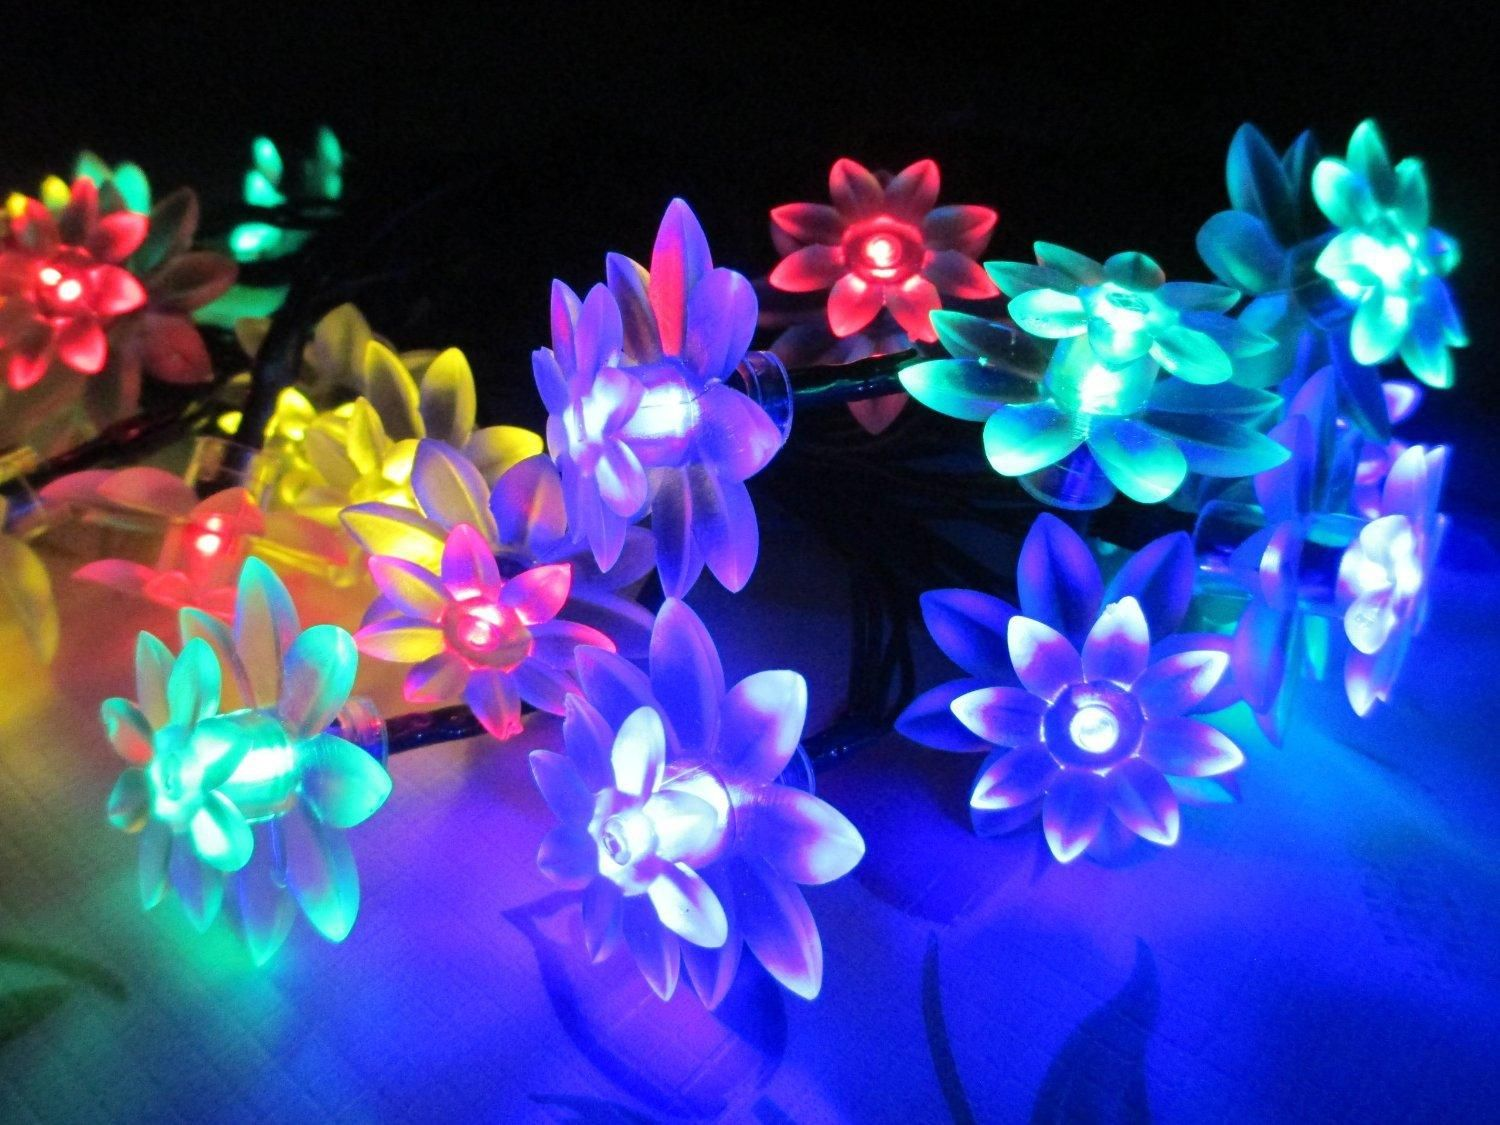 Decoration solar lights solar flower string lights fairy 20 led decoration solar lights solar flower string lights fairy 20 led blossom outdoor light for garden aloadofball Gallery